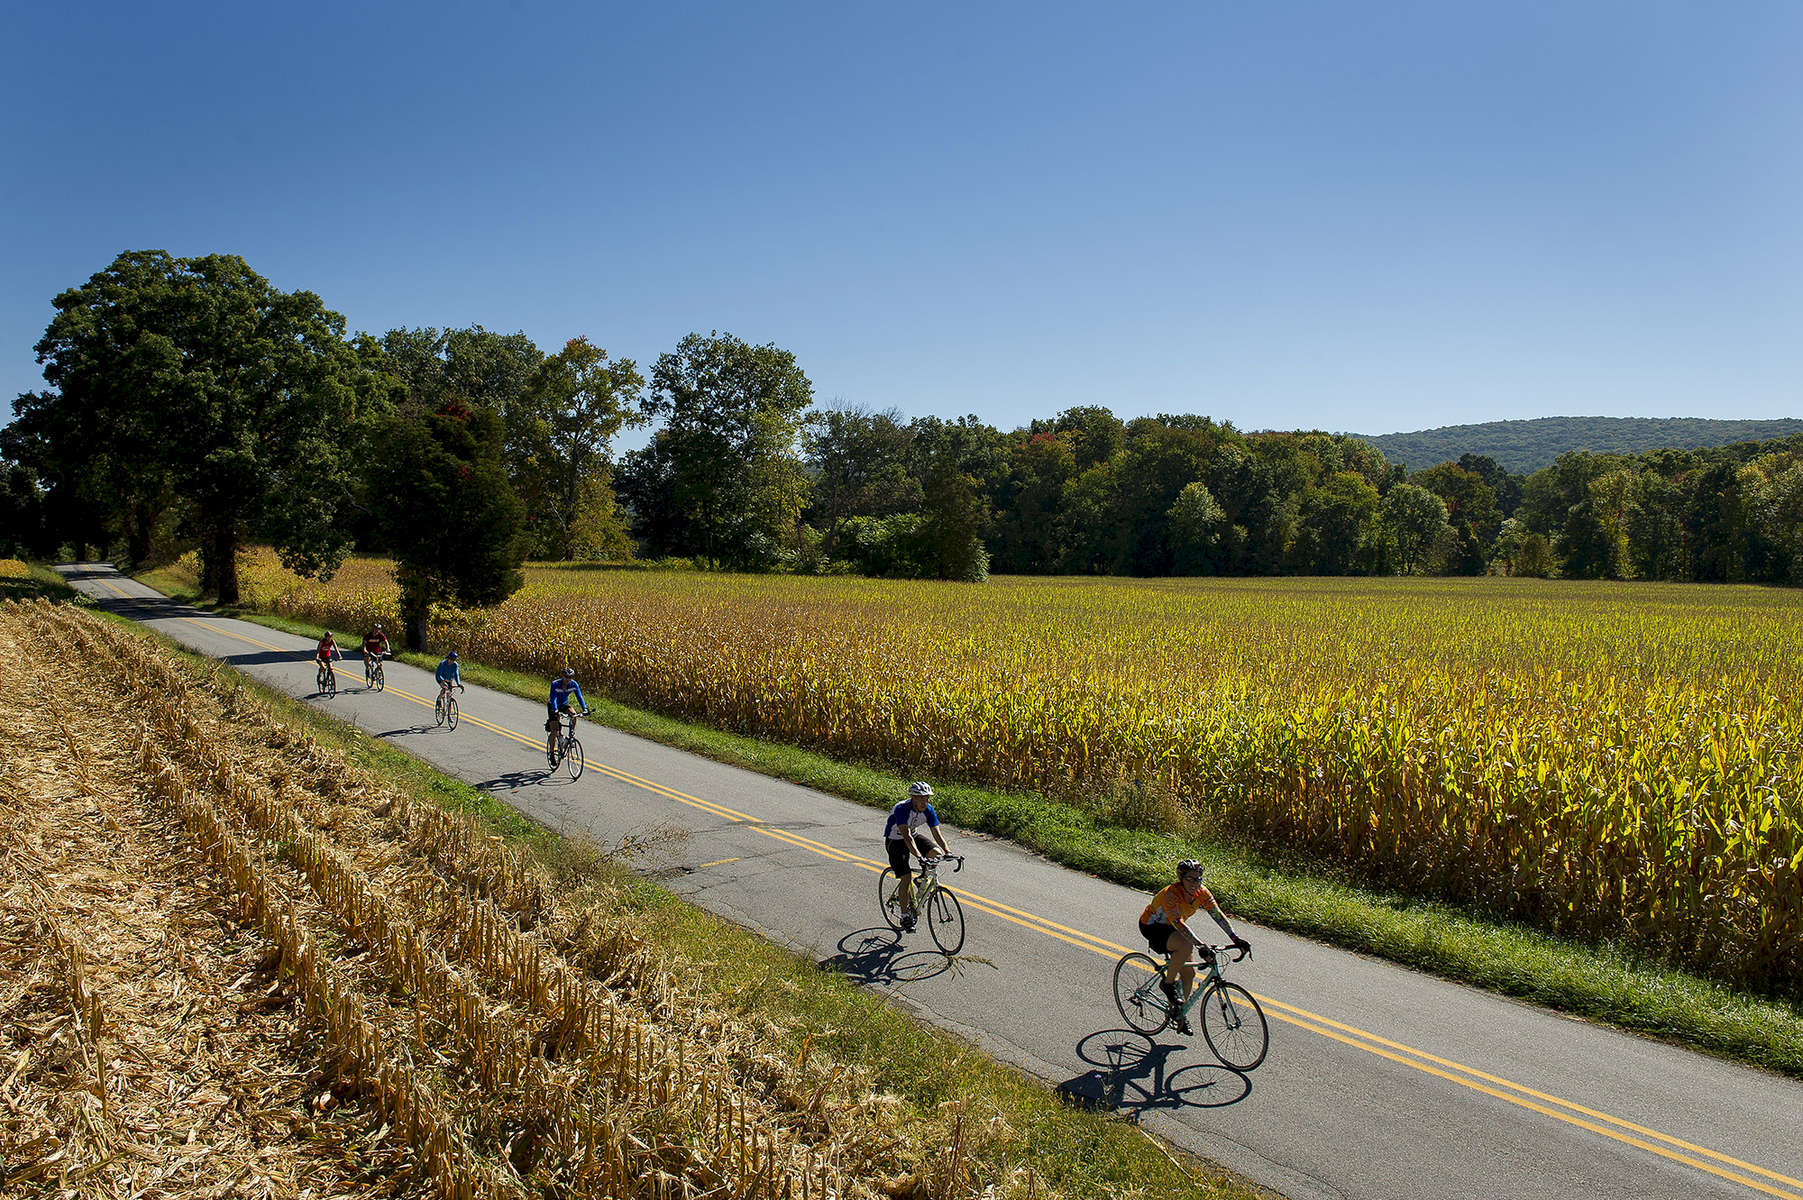 GREEN TWP., NJ    USA  (09/27/2014)   Cyclists ride between corn fields on Maple Lane in Green Twp., NJ. Participants of The Tour de Farm, a {quote}cycling and culinary experience{quote}  bicycle and partake in food sampling throughout a 35 mile ride Saturday morning, September 27, 2014. The riders, estimated from 300-350 for the {quote}Weekend Warrior{quote} ride, bicycle from farm to farm sampling local foods, culminating in a celebration dinner  near the apple orchards at the Race Farm.  A large buffet style dinner, hosted by well know chefs from NJ and NYC completes the day.  Live music, local wine and Oysters from Barnegat Bay complement the afternoon's dinner celebration.    Matt Rainey for The New York Times